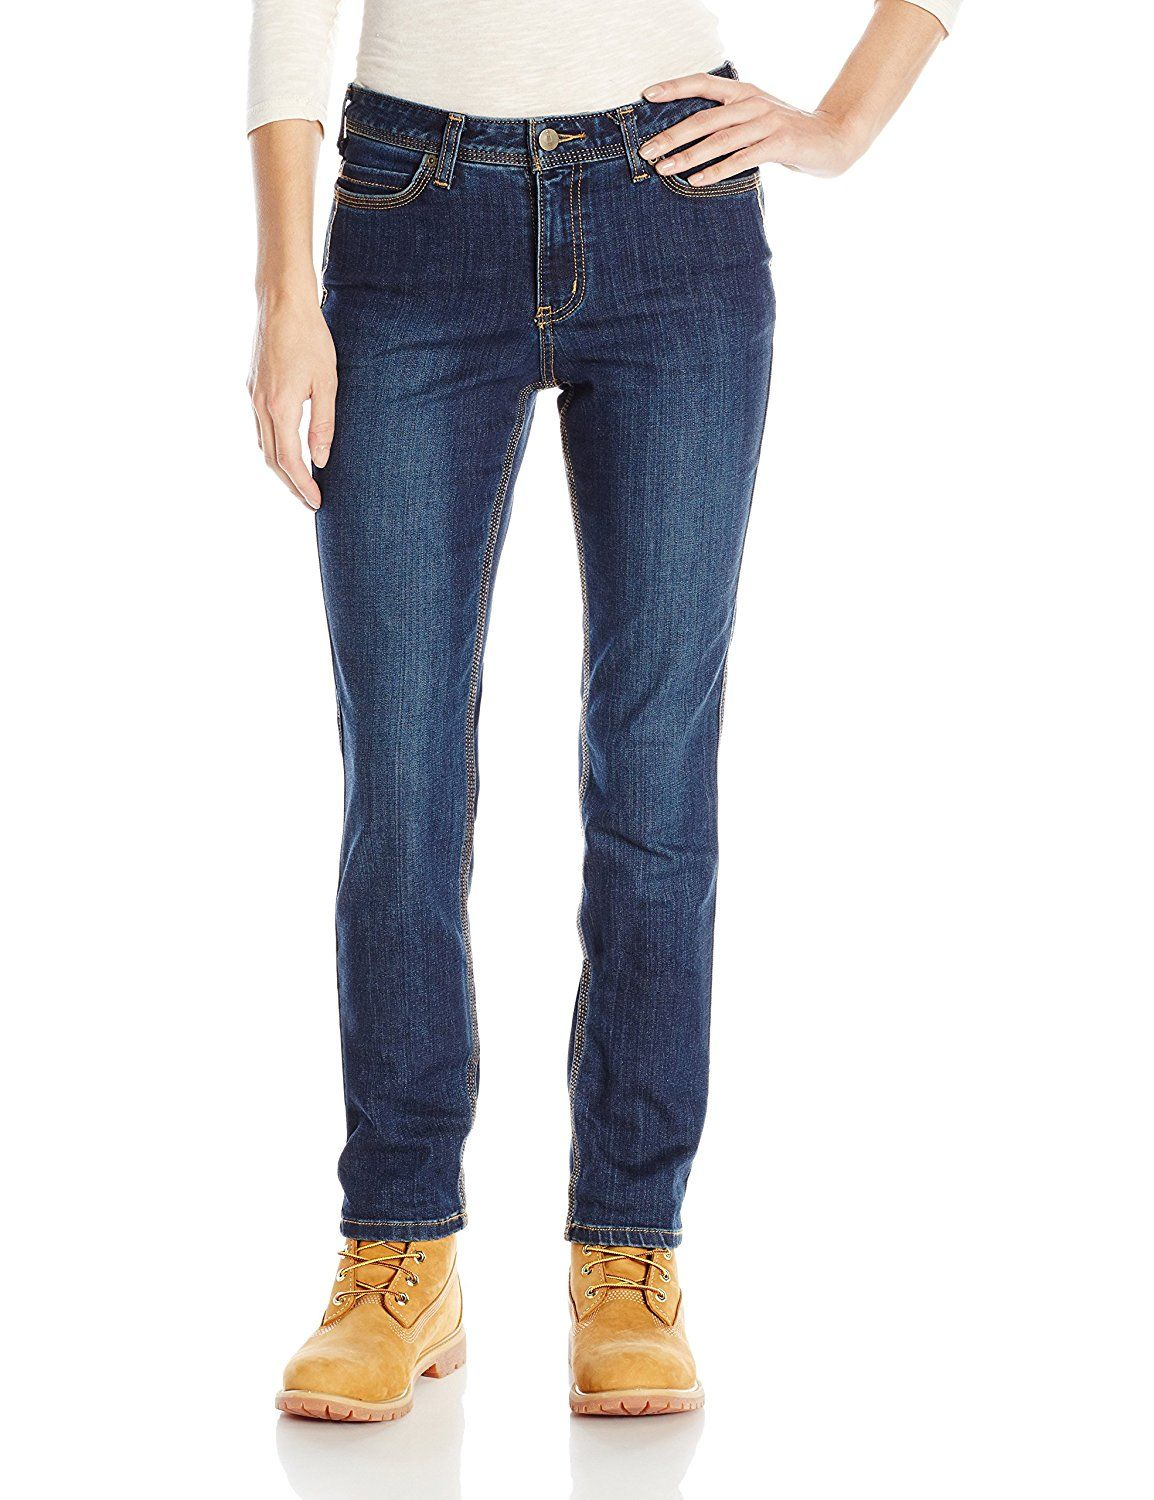 Carhartt womens slim fit nyona jean this is an amazon